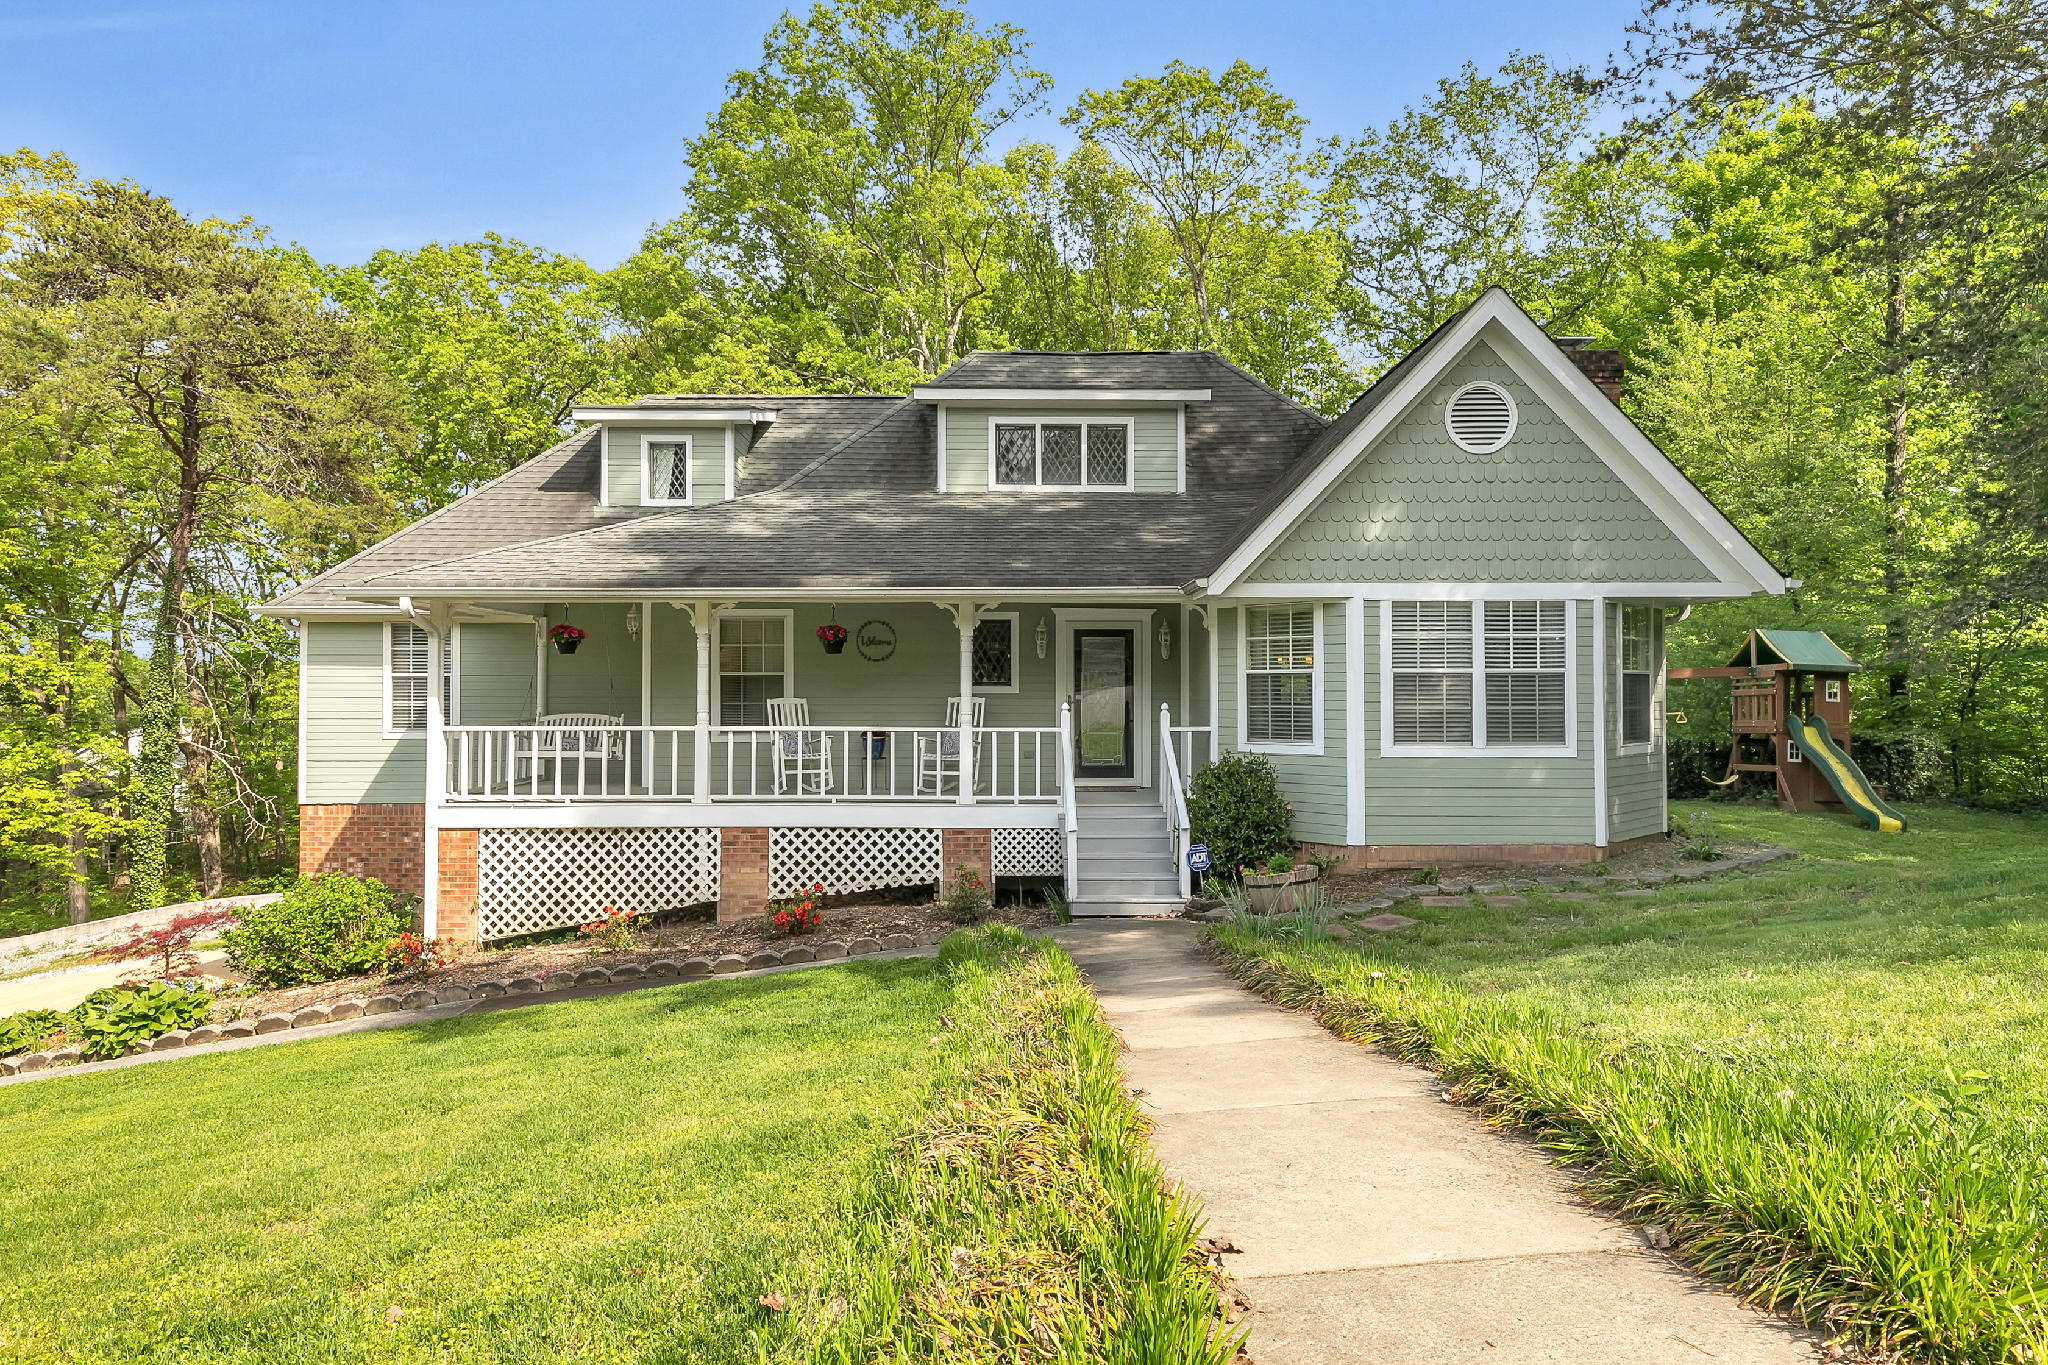 404 English Oaks Dr, Hixson, TN 37343